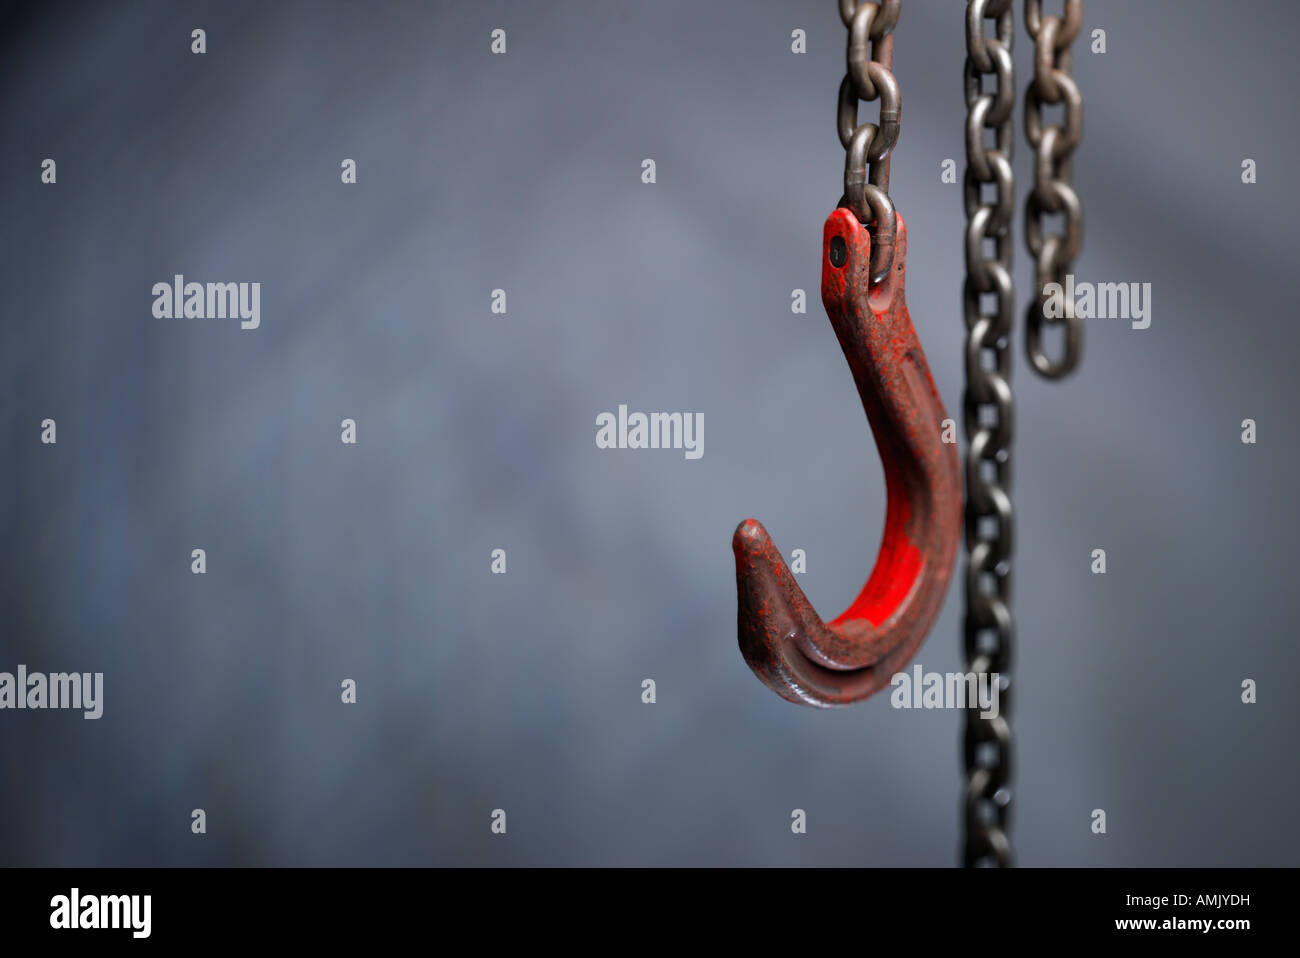 Hook and chains - Stock Image